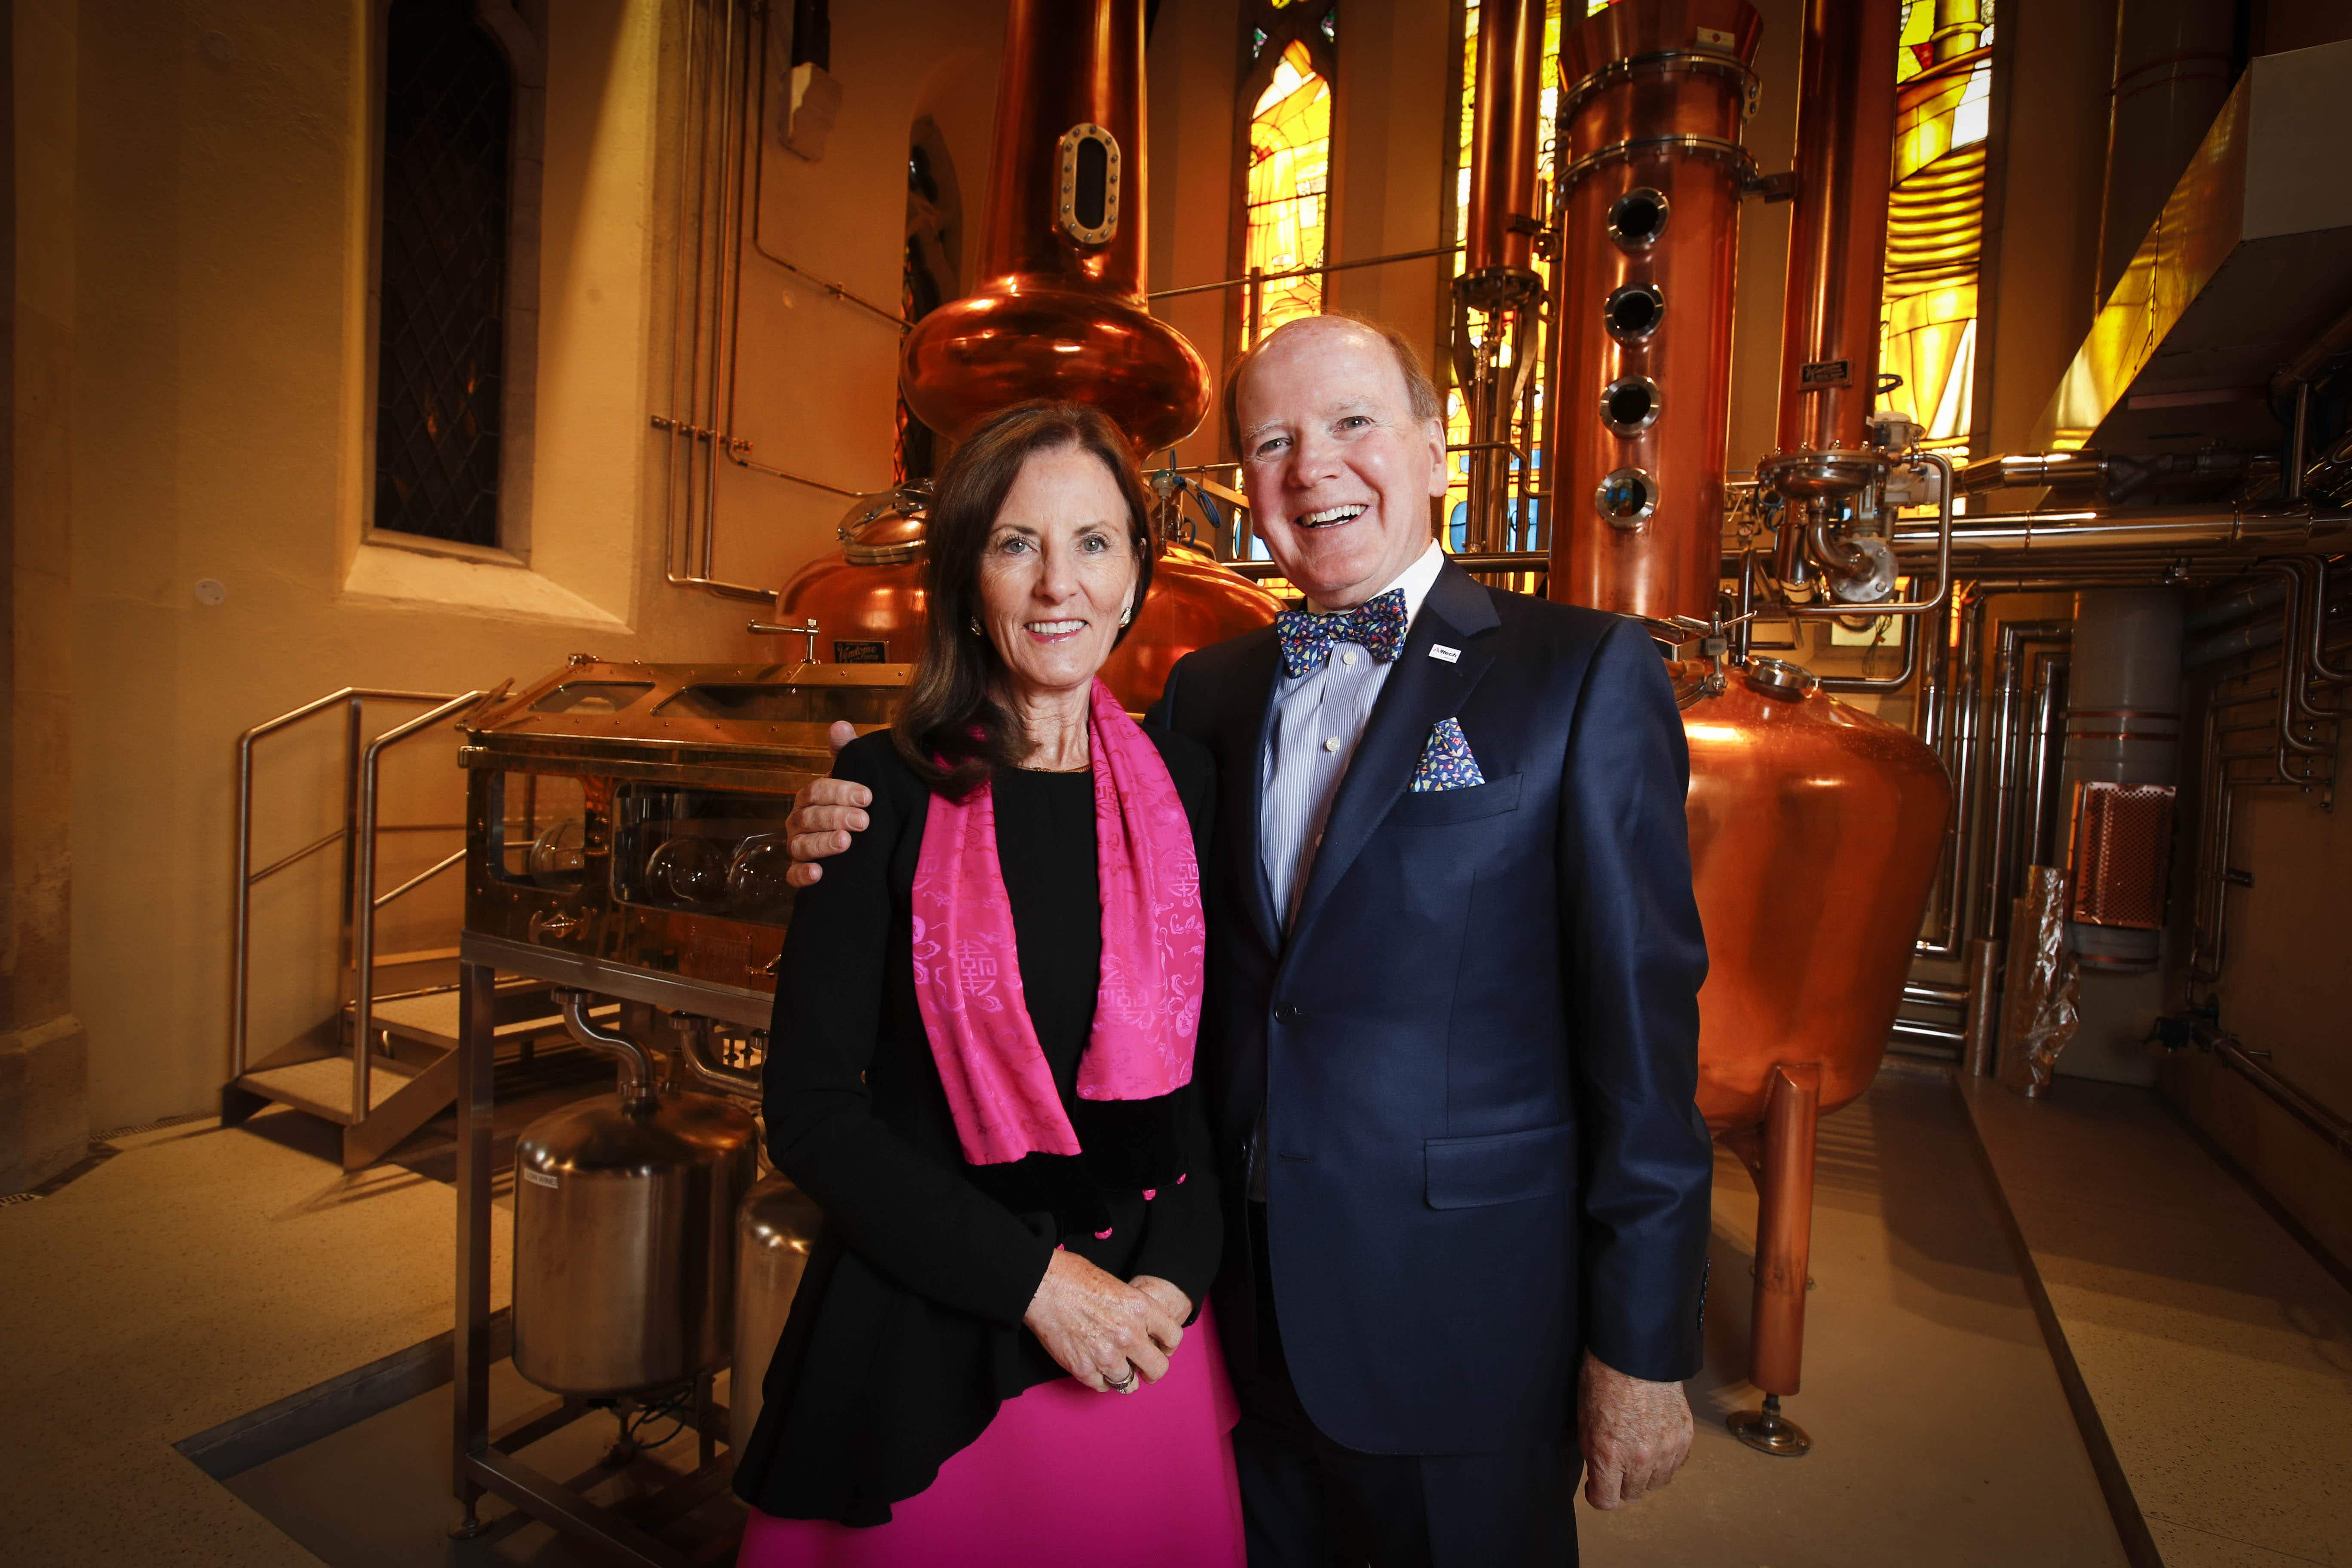 Boutique Dublin whiskey distillery to open in old church next month